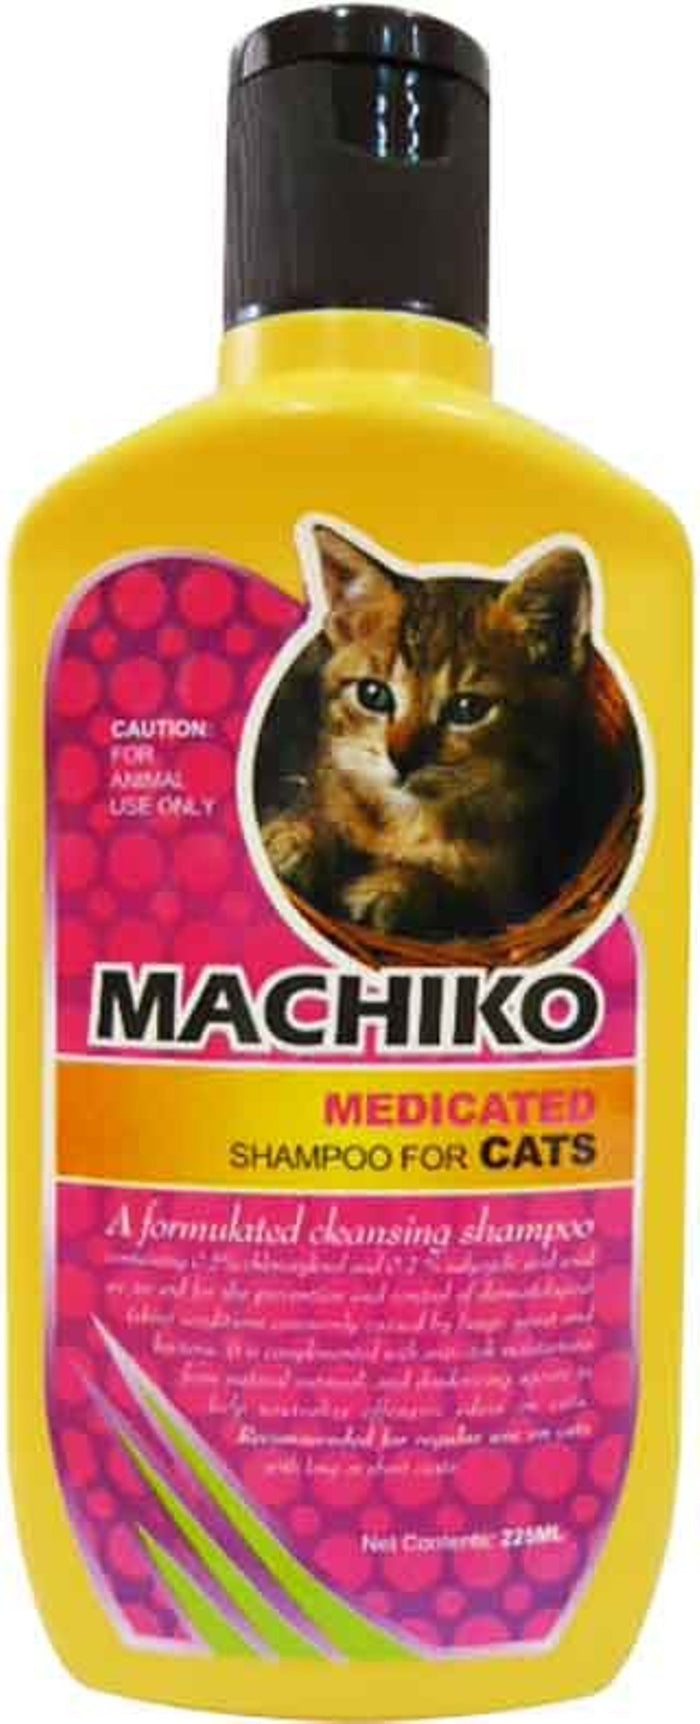 Machiko - Medicated Cat Shampoo